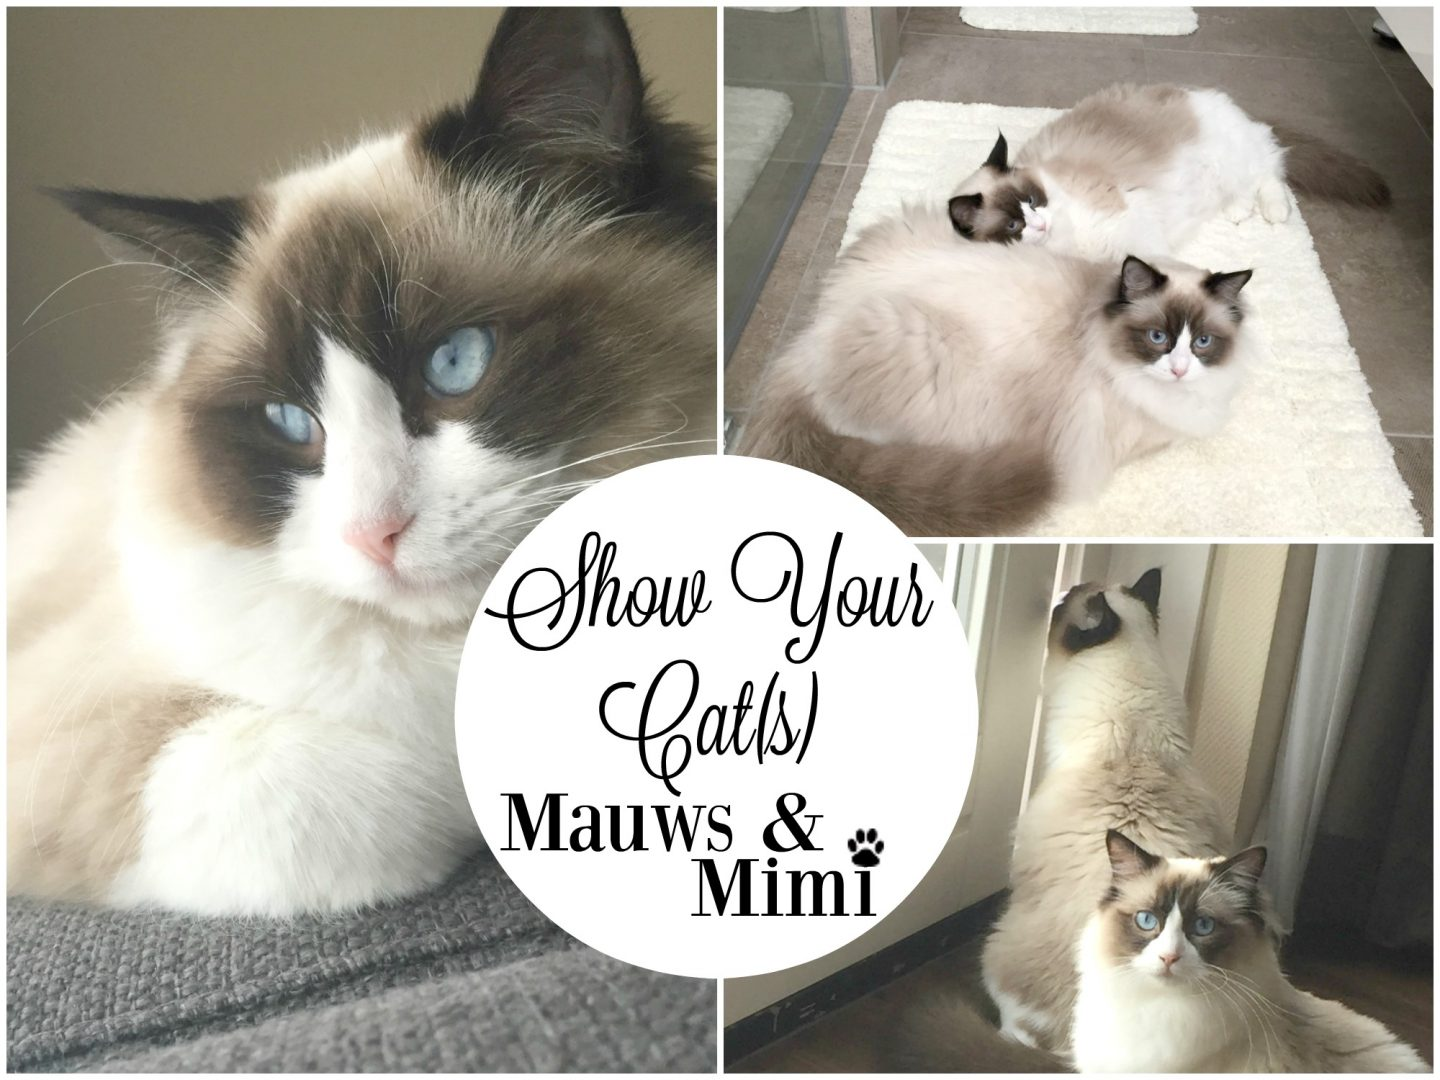 Show Your Cat(s)   Mauws & Mimi